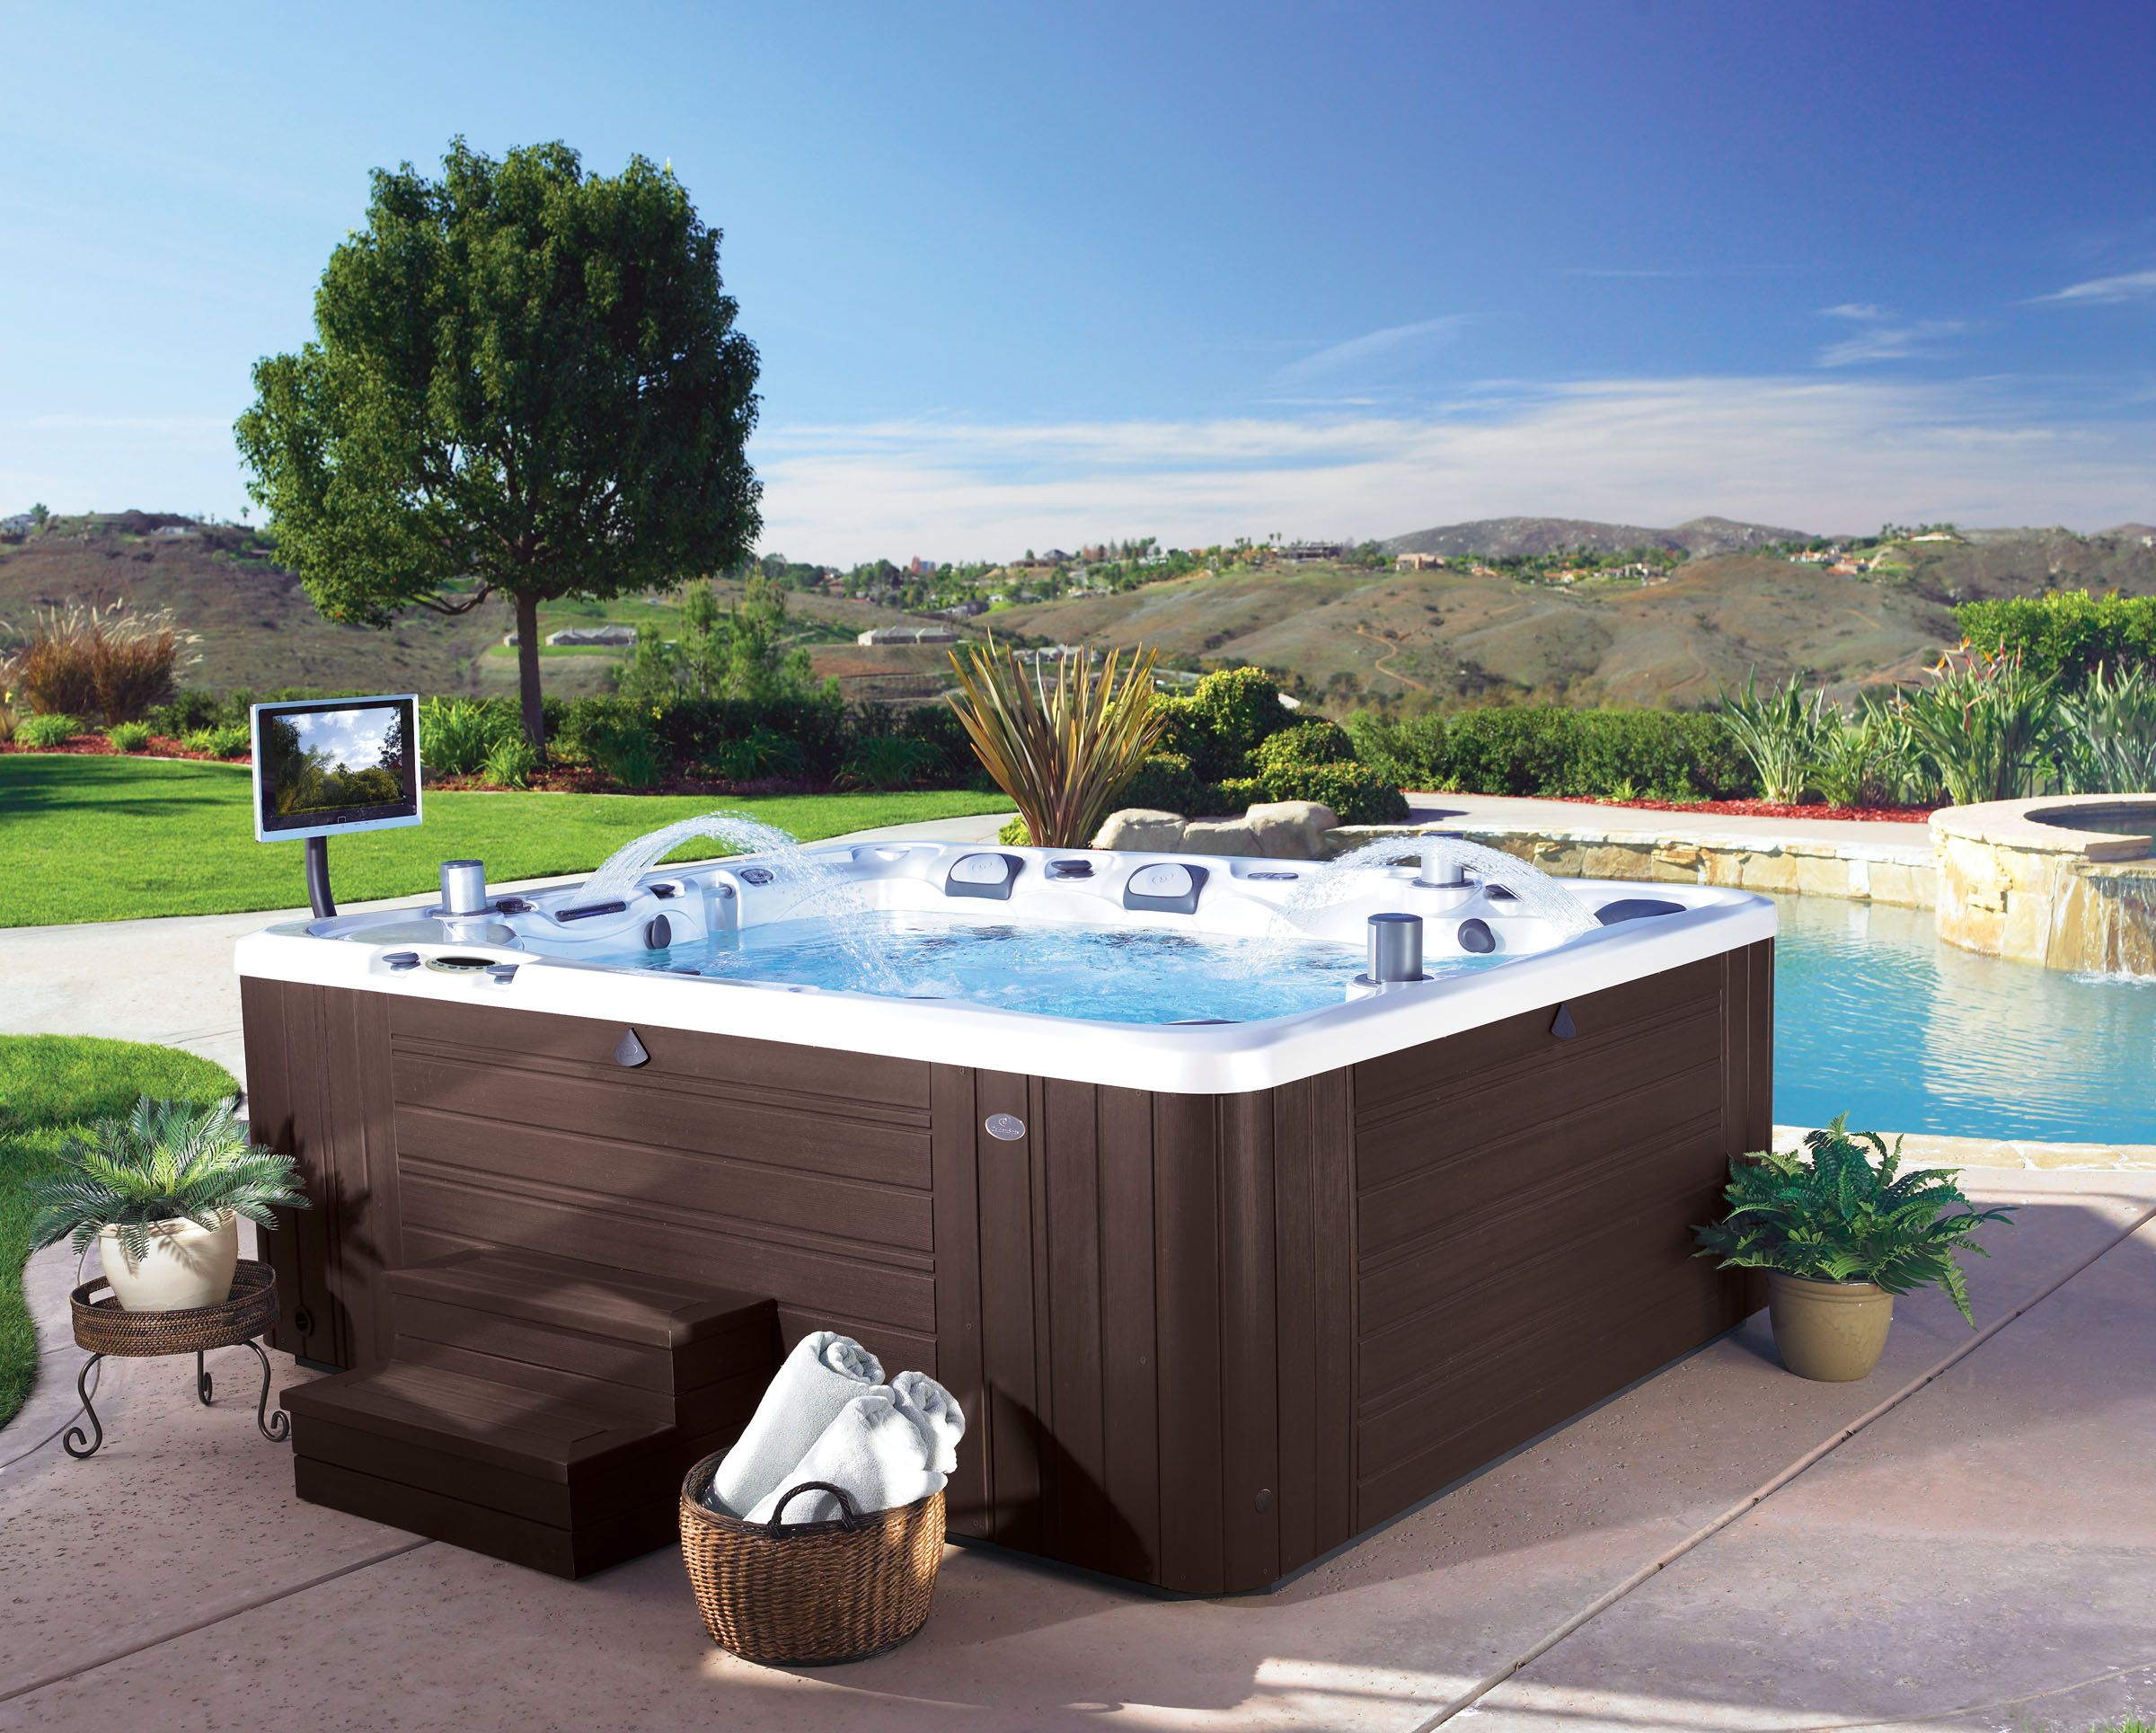 A beautiful Caldera #hottub. Shop the Utopia series to enjoy your next soak.